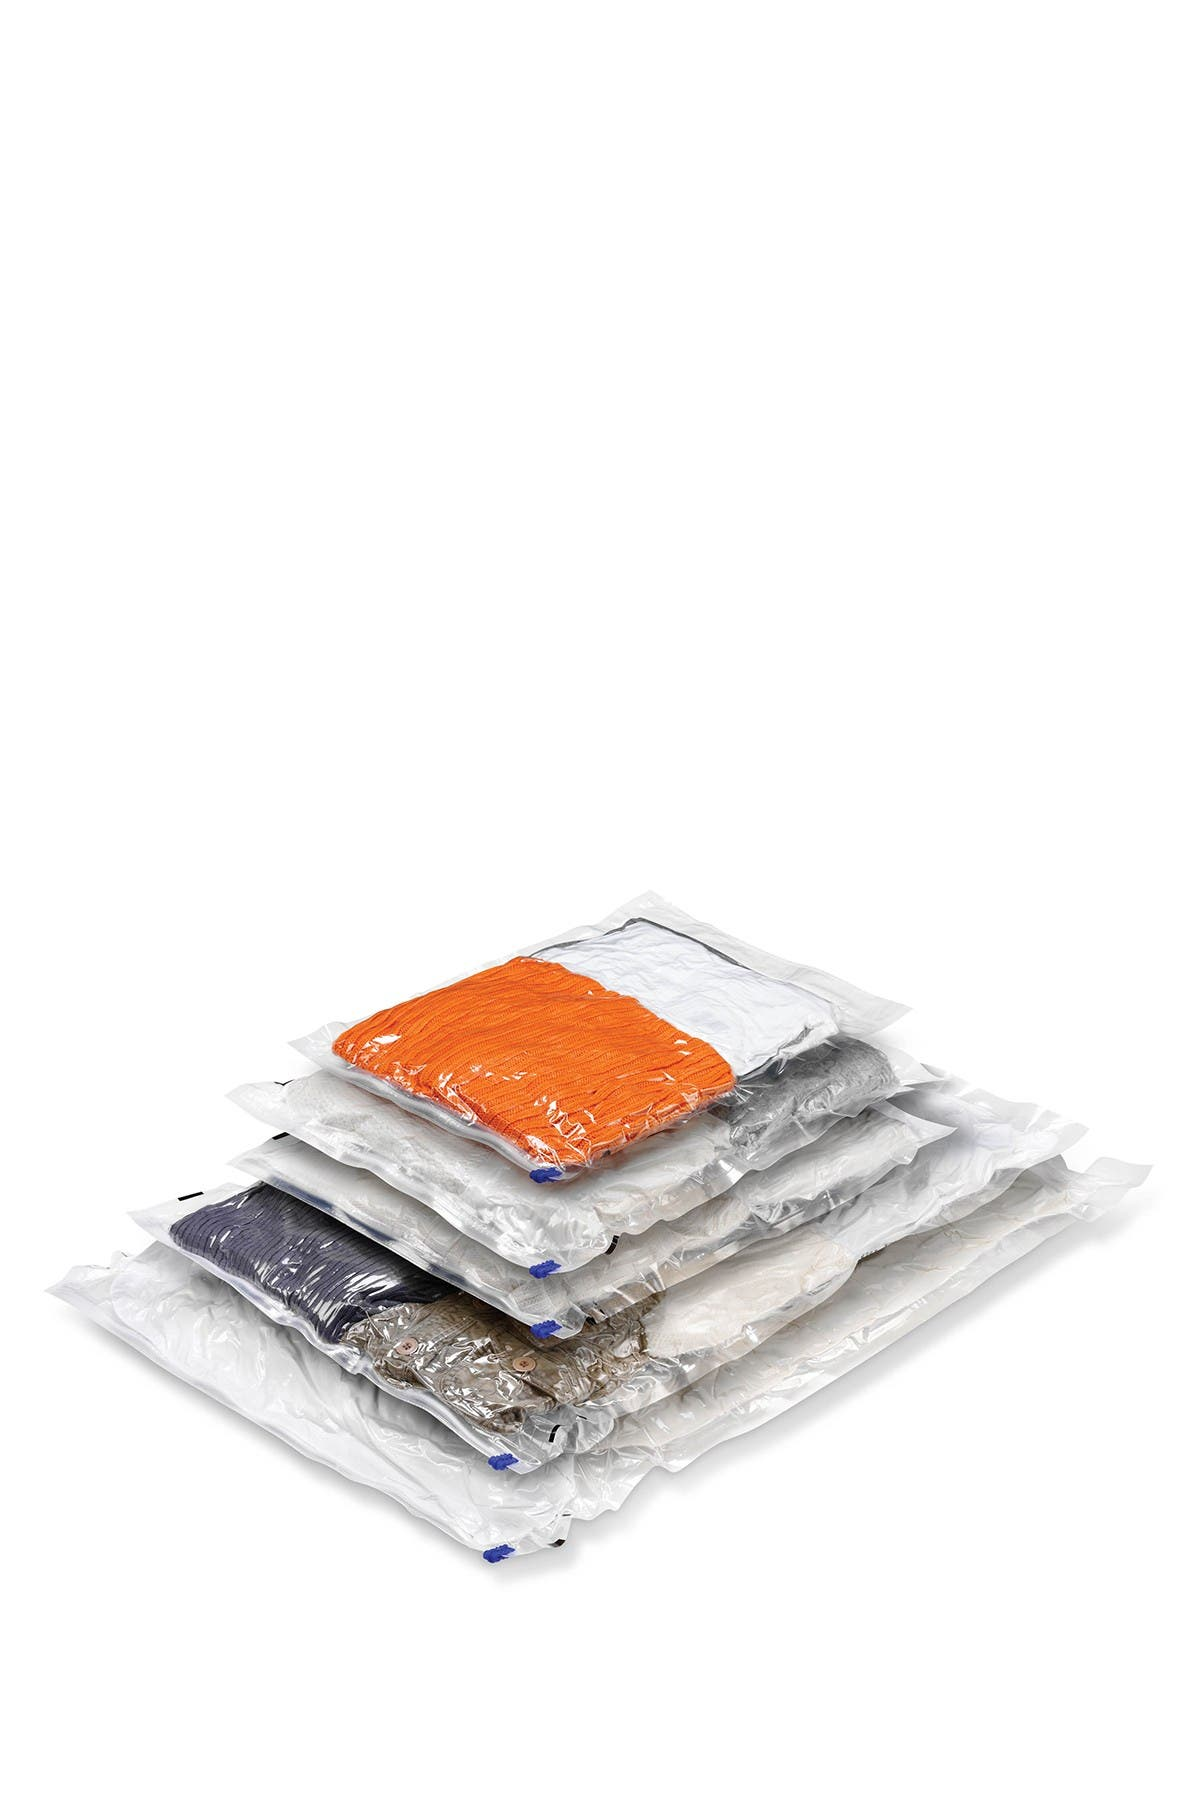 Image of Honey-Can-Do 5 Pack Combo Vacuum Storage Pack